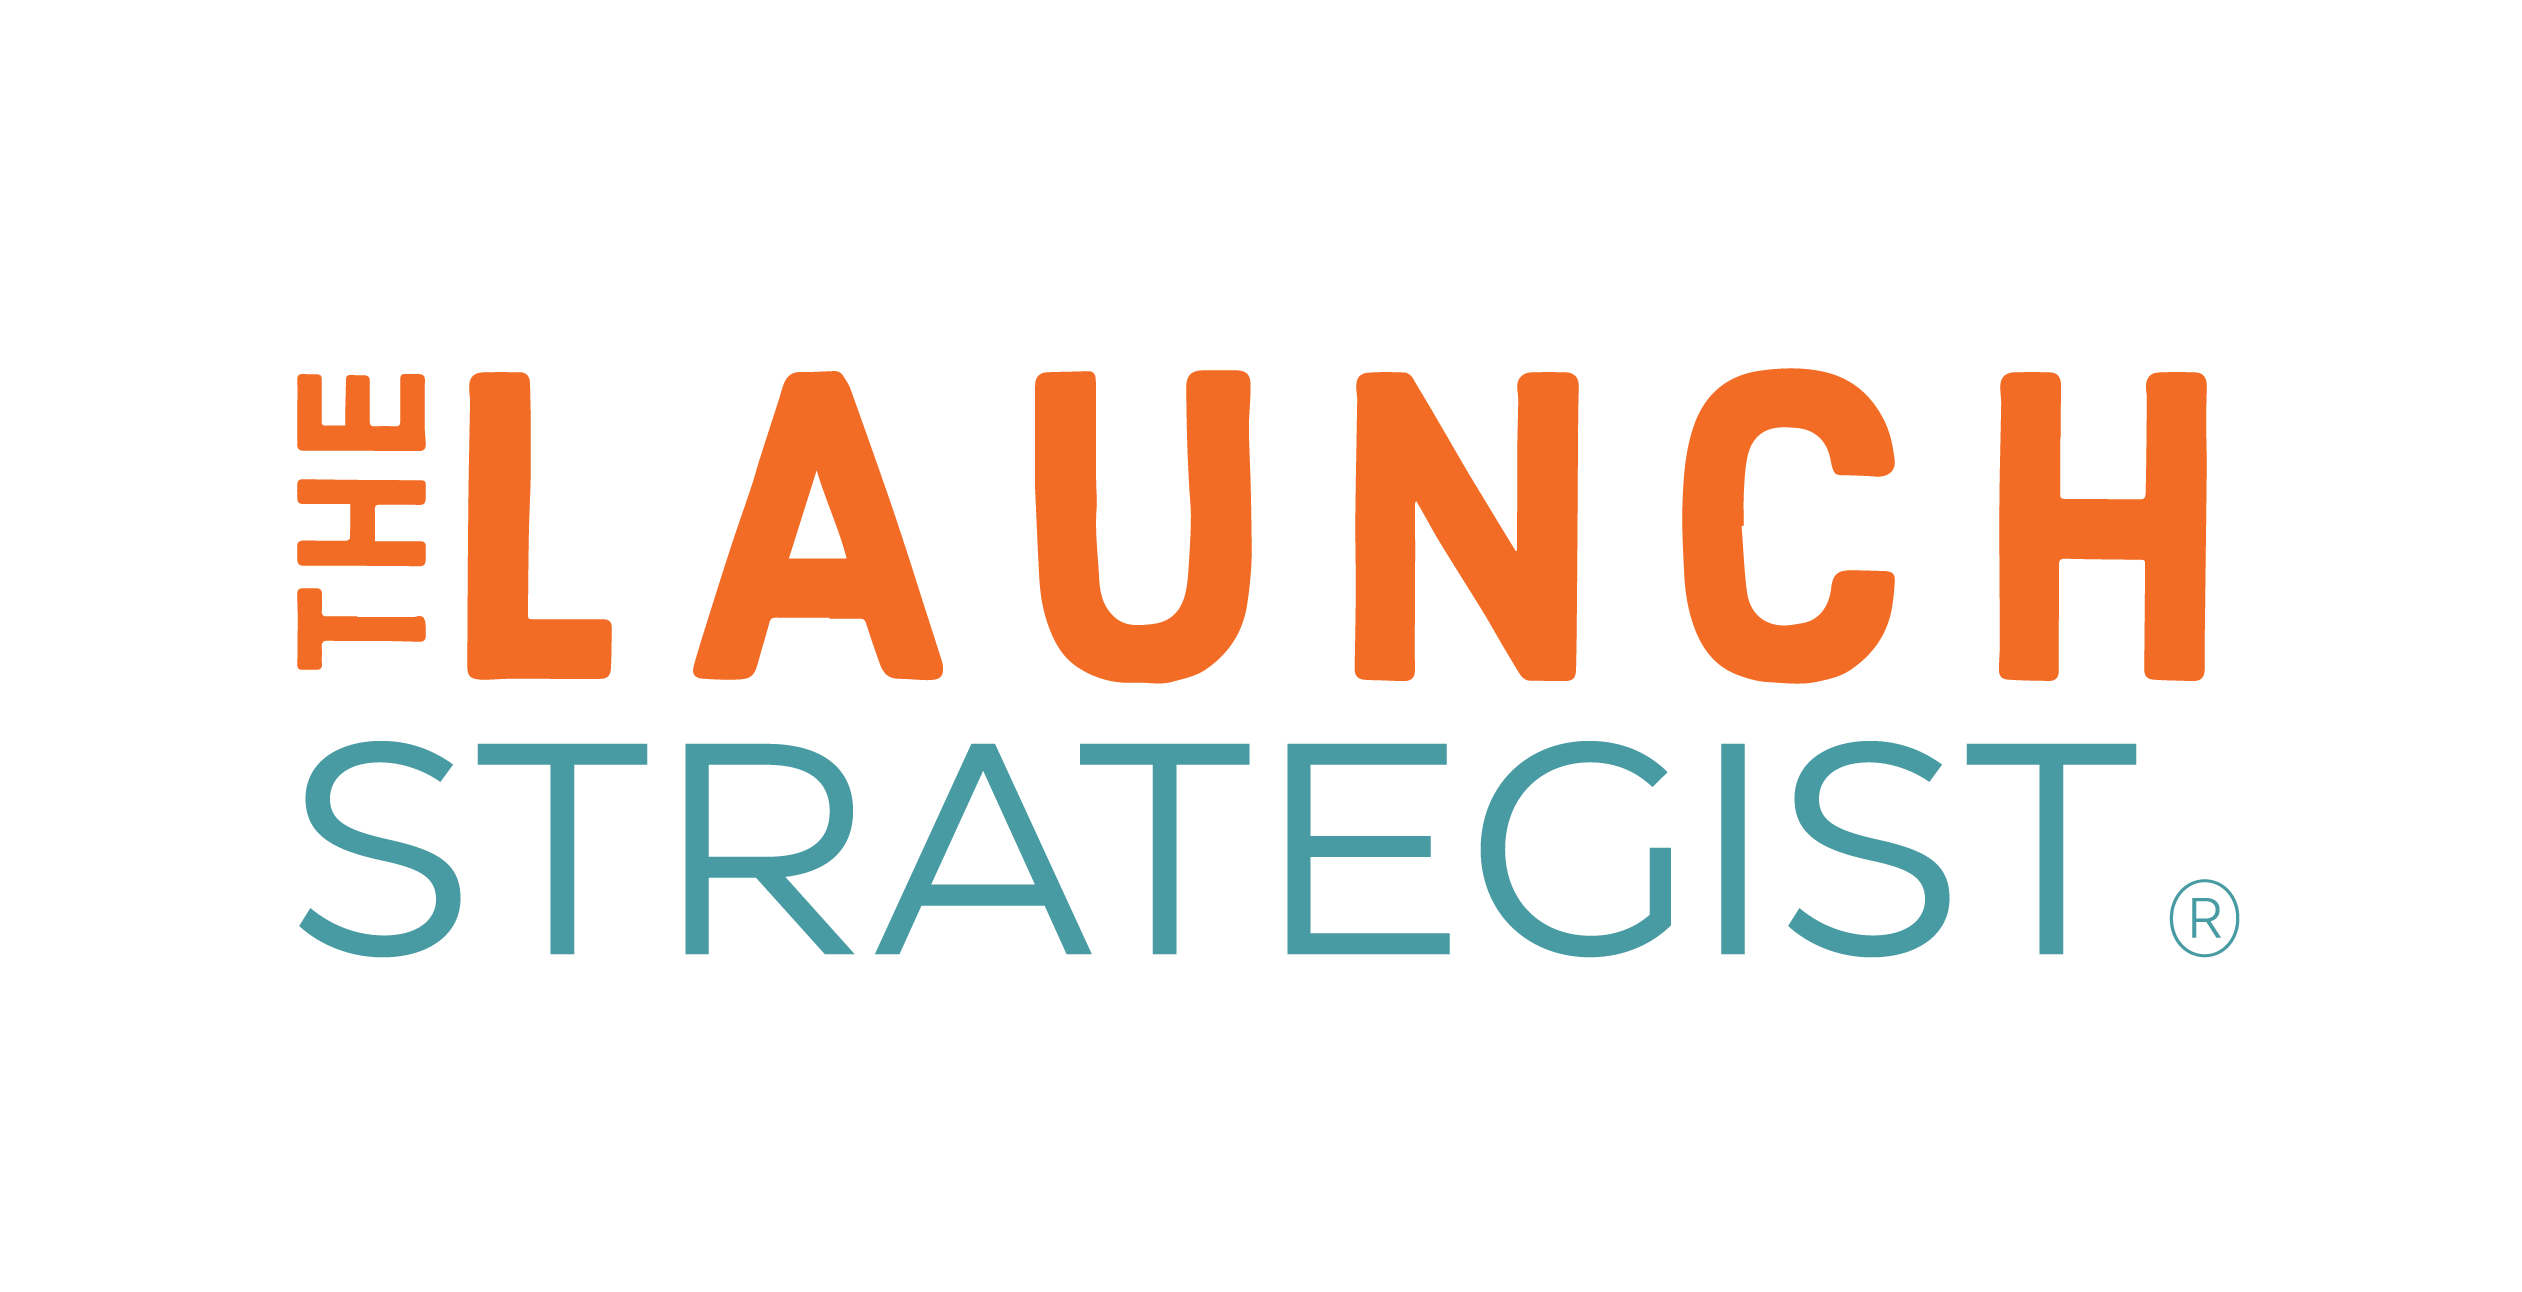 The Launch Strategist